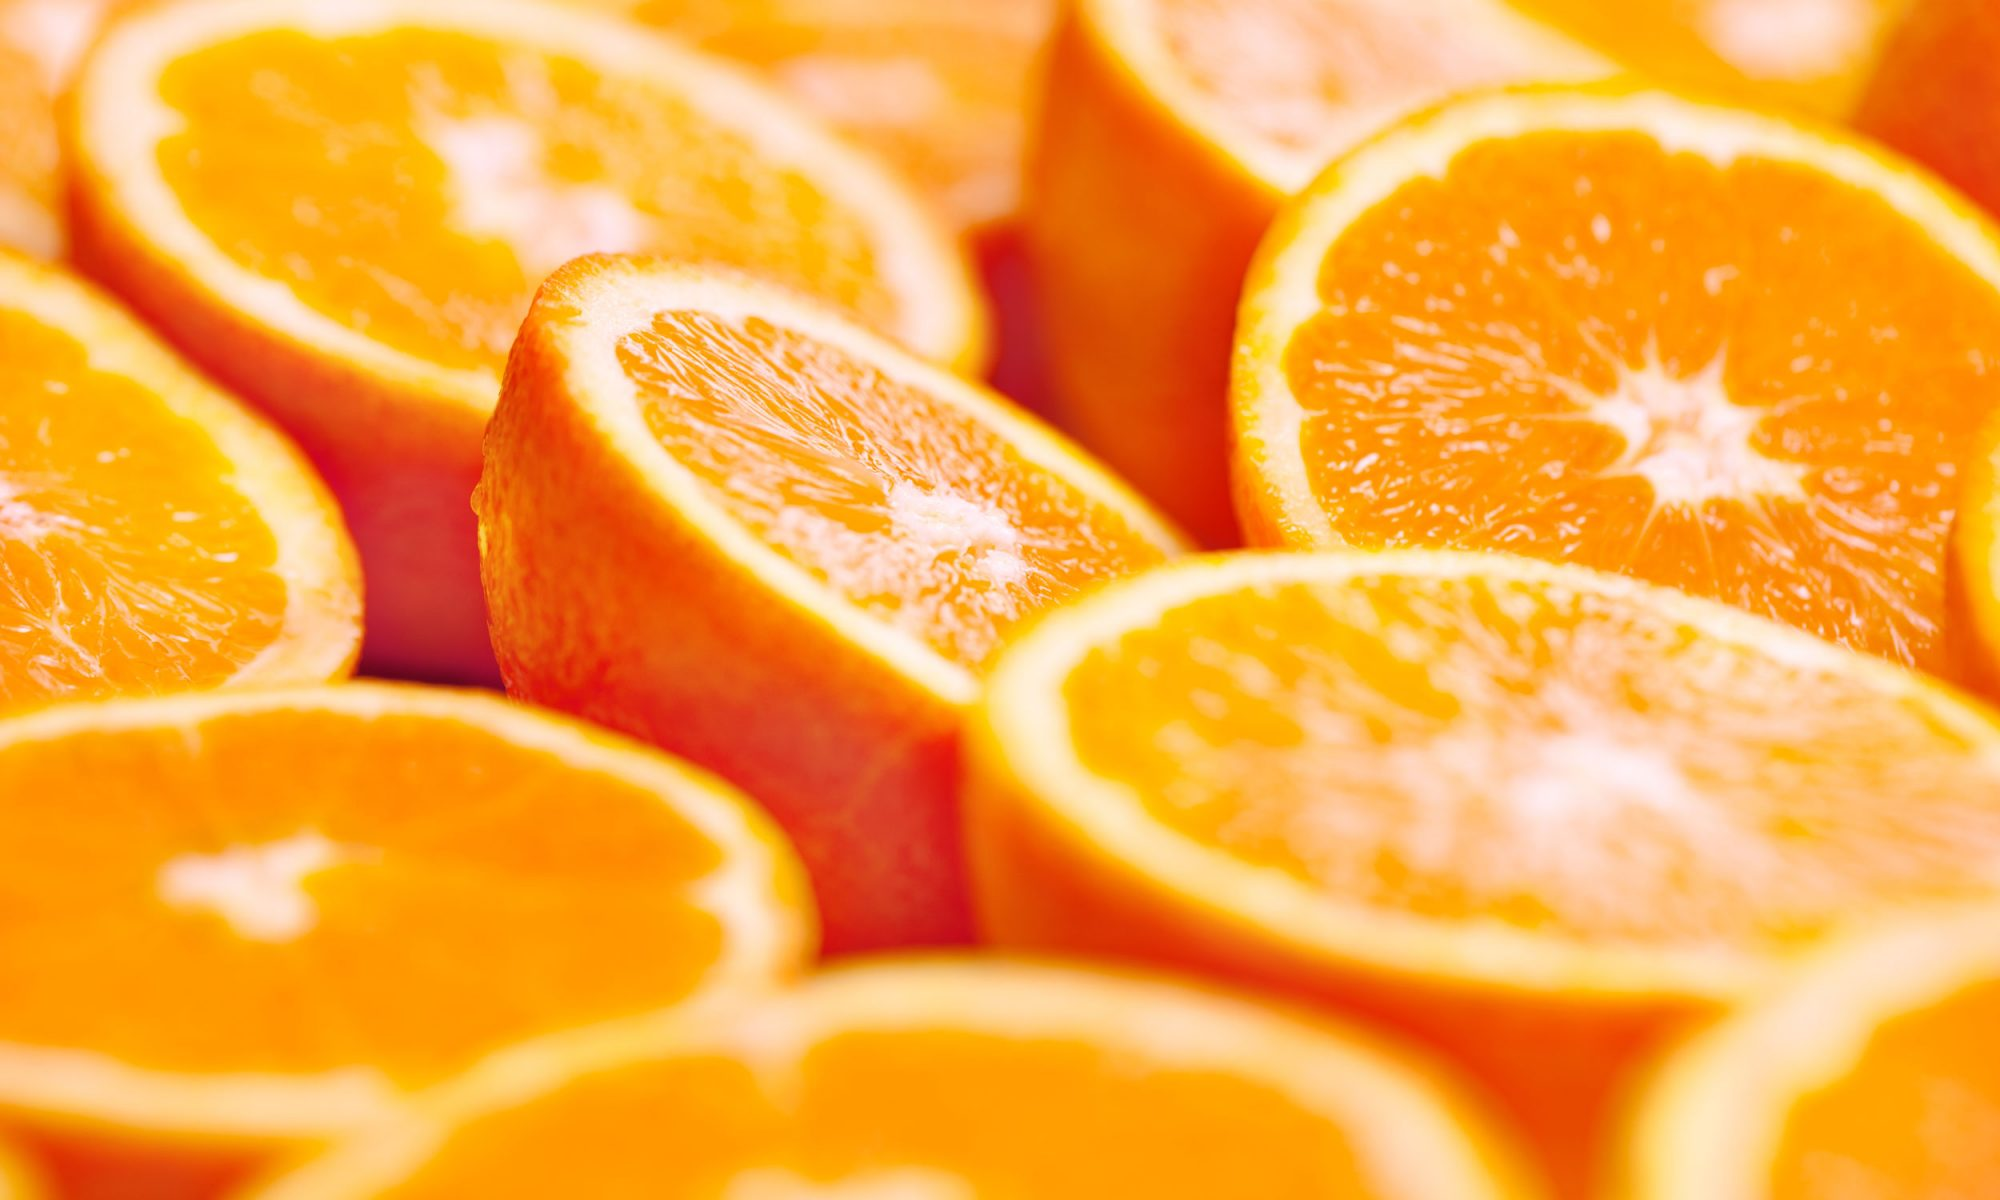 EC: I Hate Oranges and I Don't Know Why